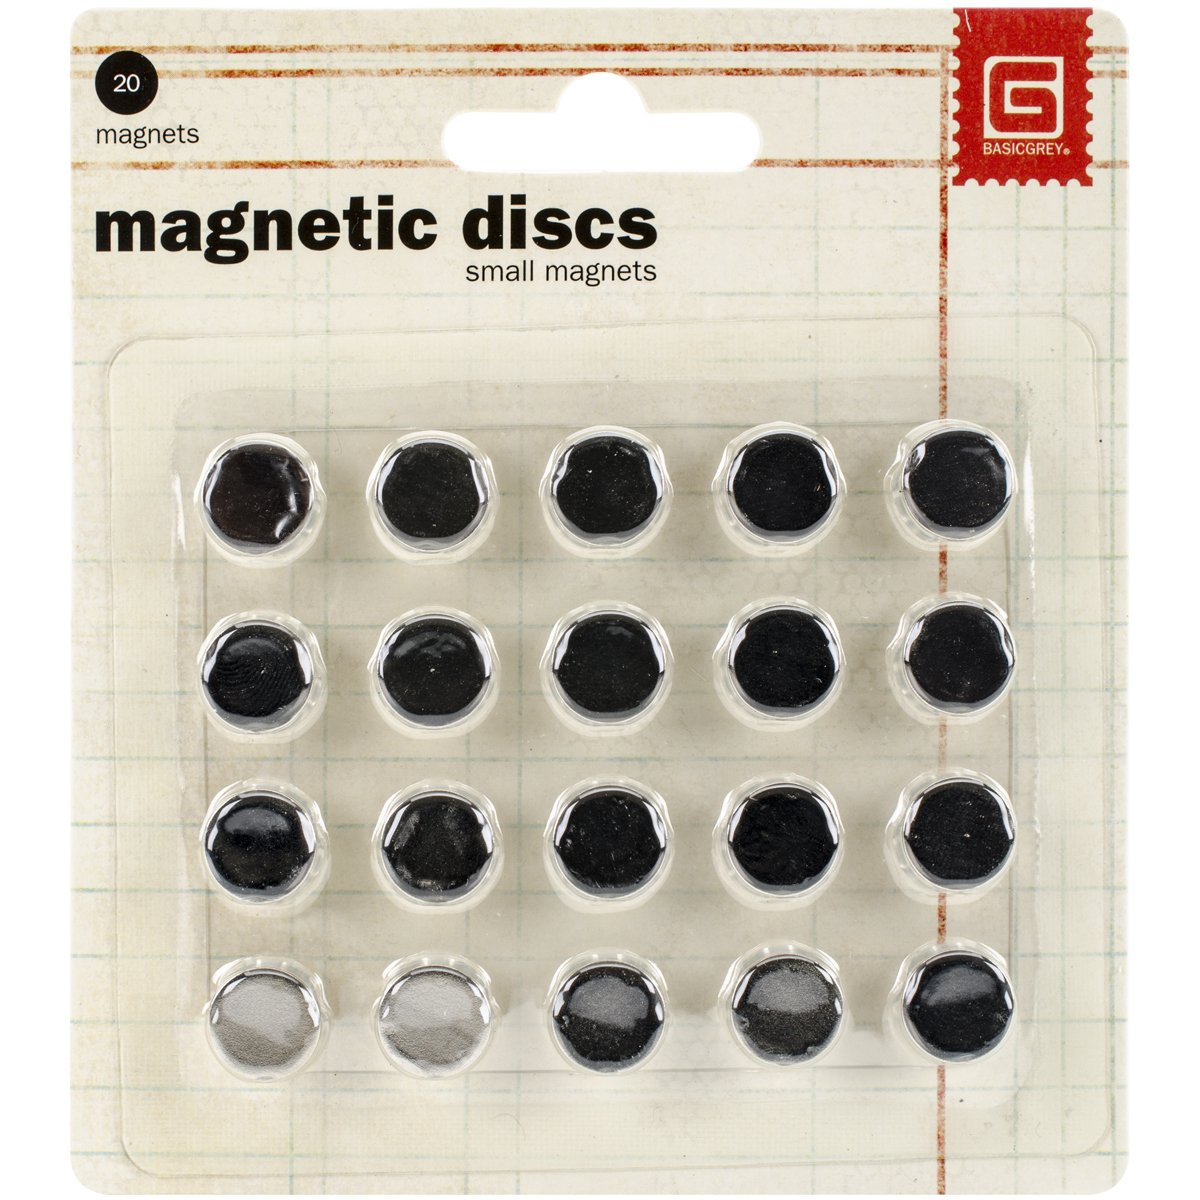 Magnetic Snaps, Small 3.8-Inch, 20 Count Basic Grey MET359